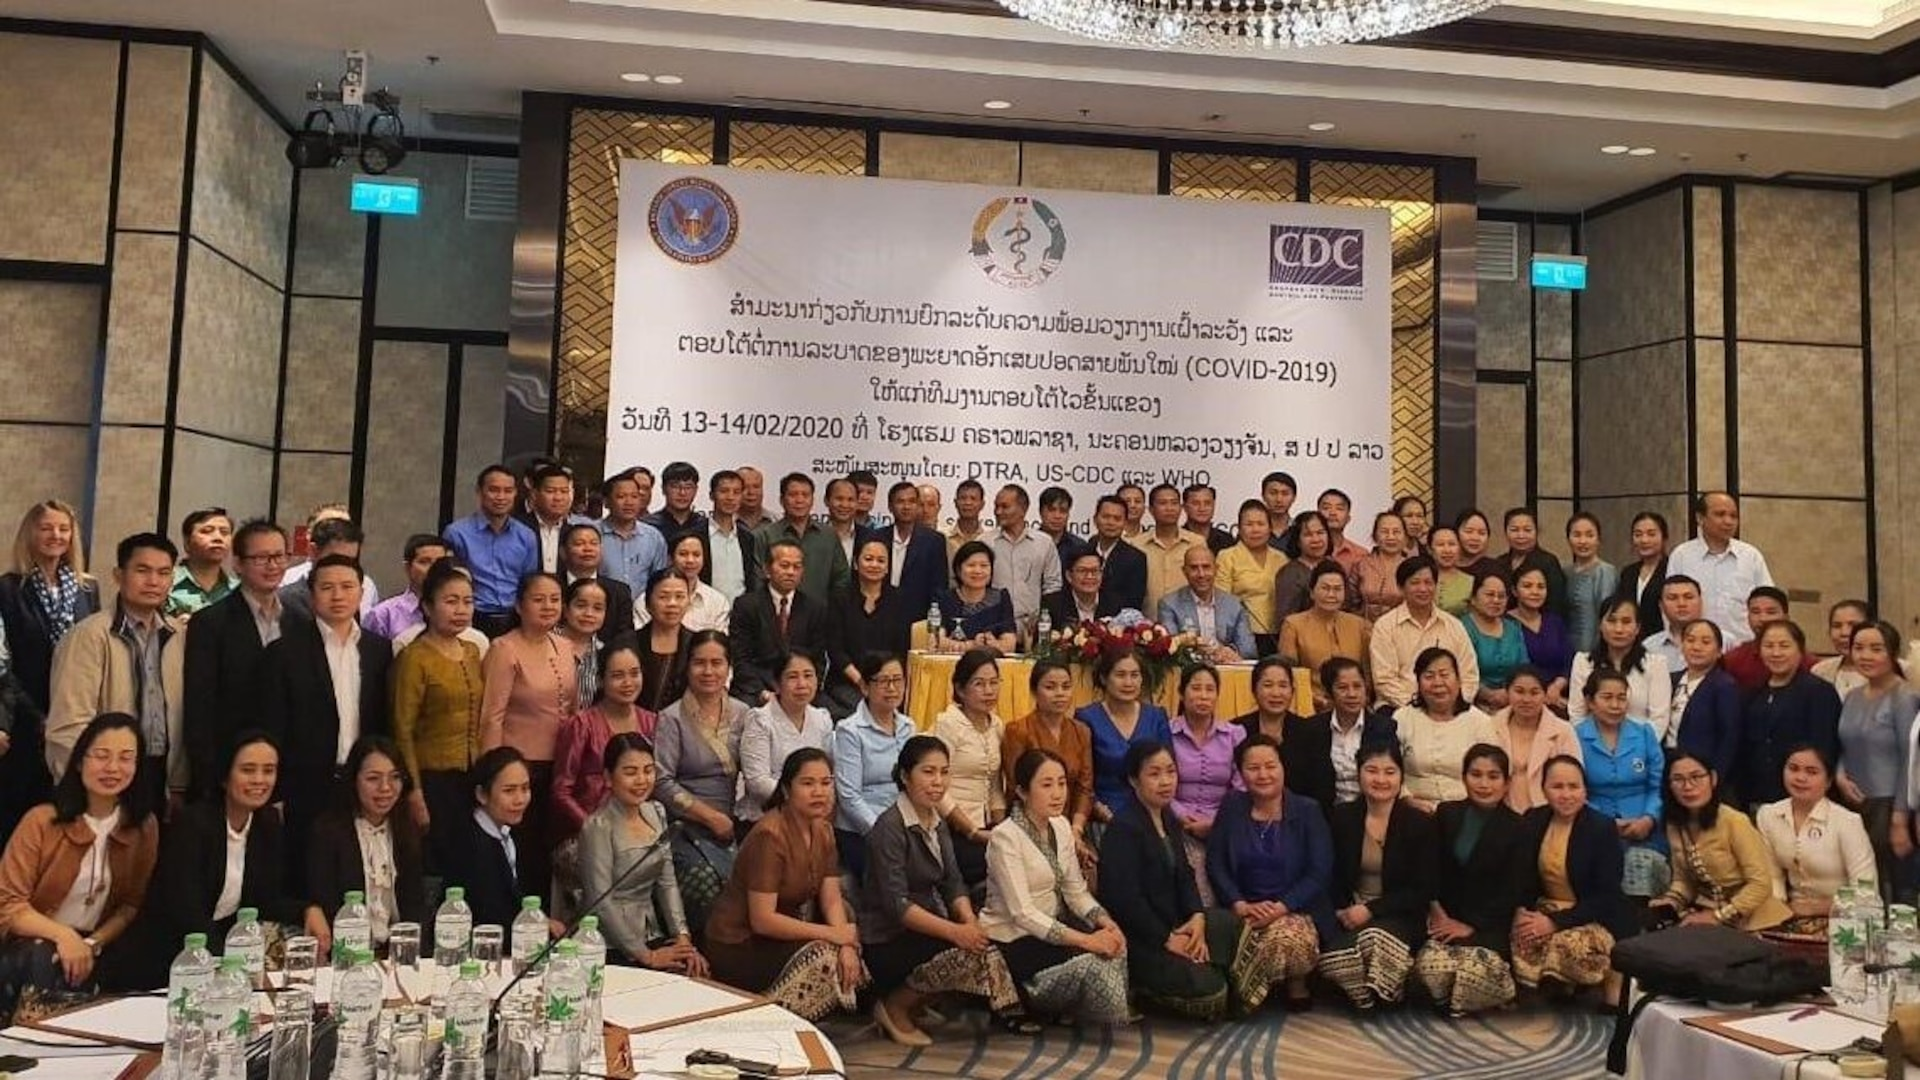 United States Announces $3 Million of CDC Support for COVID – 19 Response in Lao PDR